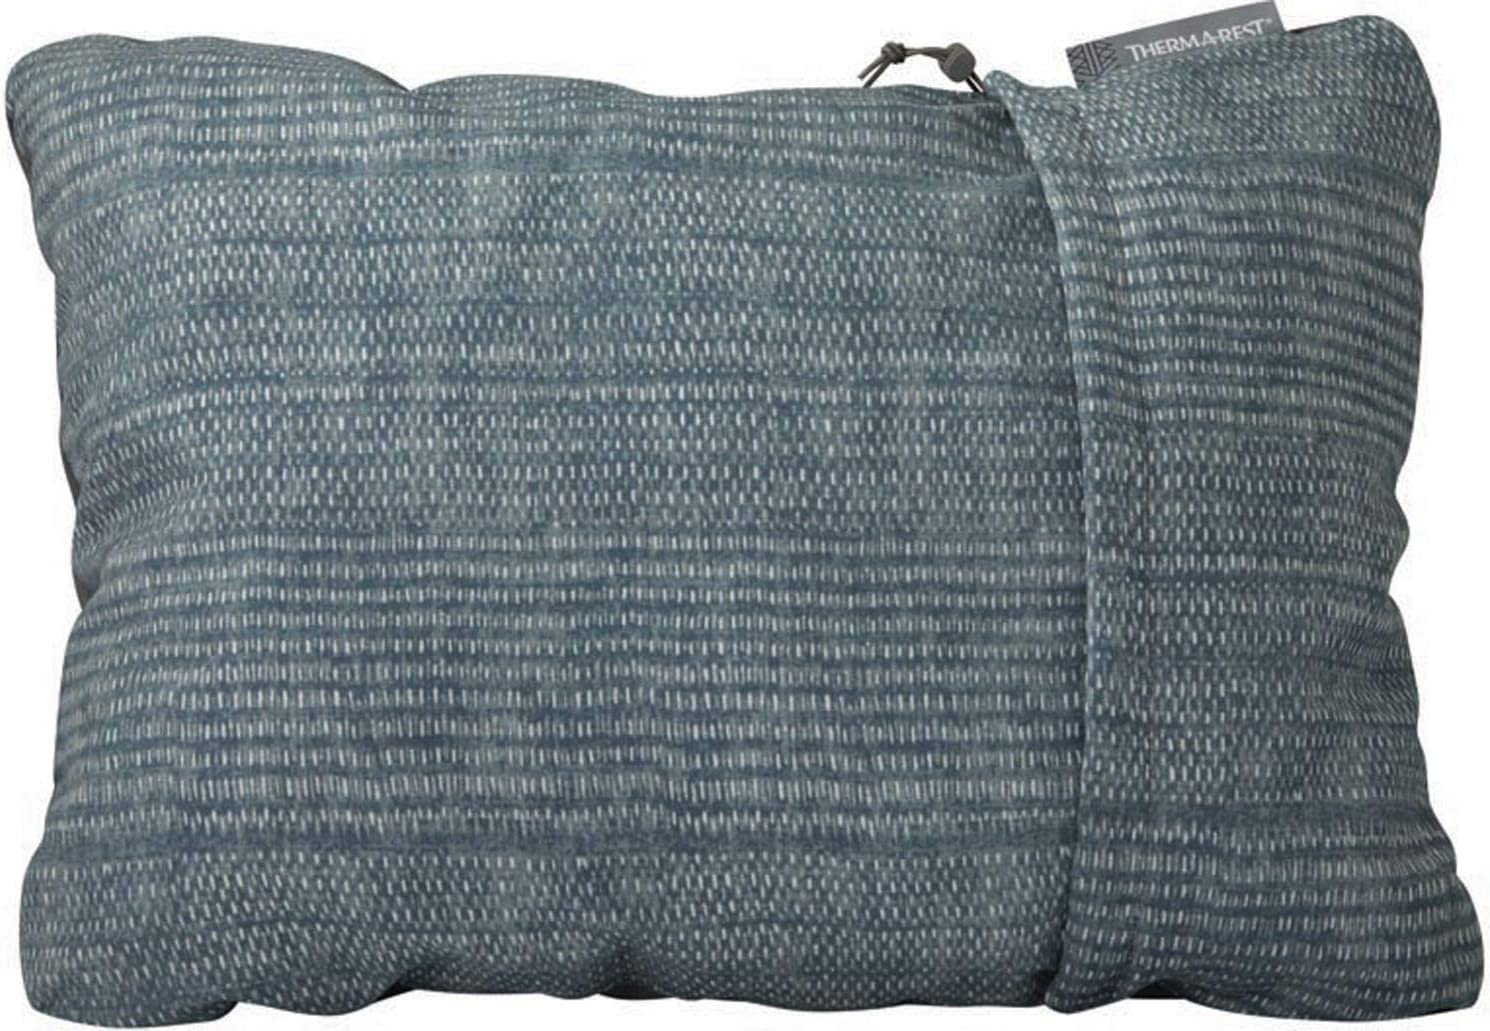 Airplanes and Road Trips Therm-a-Rest Compressible Travel Pillow for Camping 12 x 16 Inches Backpacking Small Denim